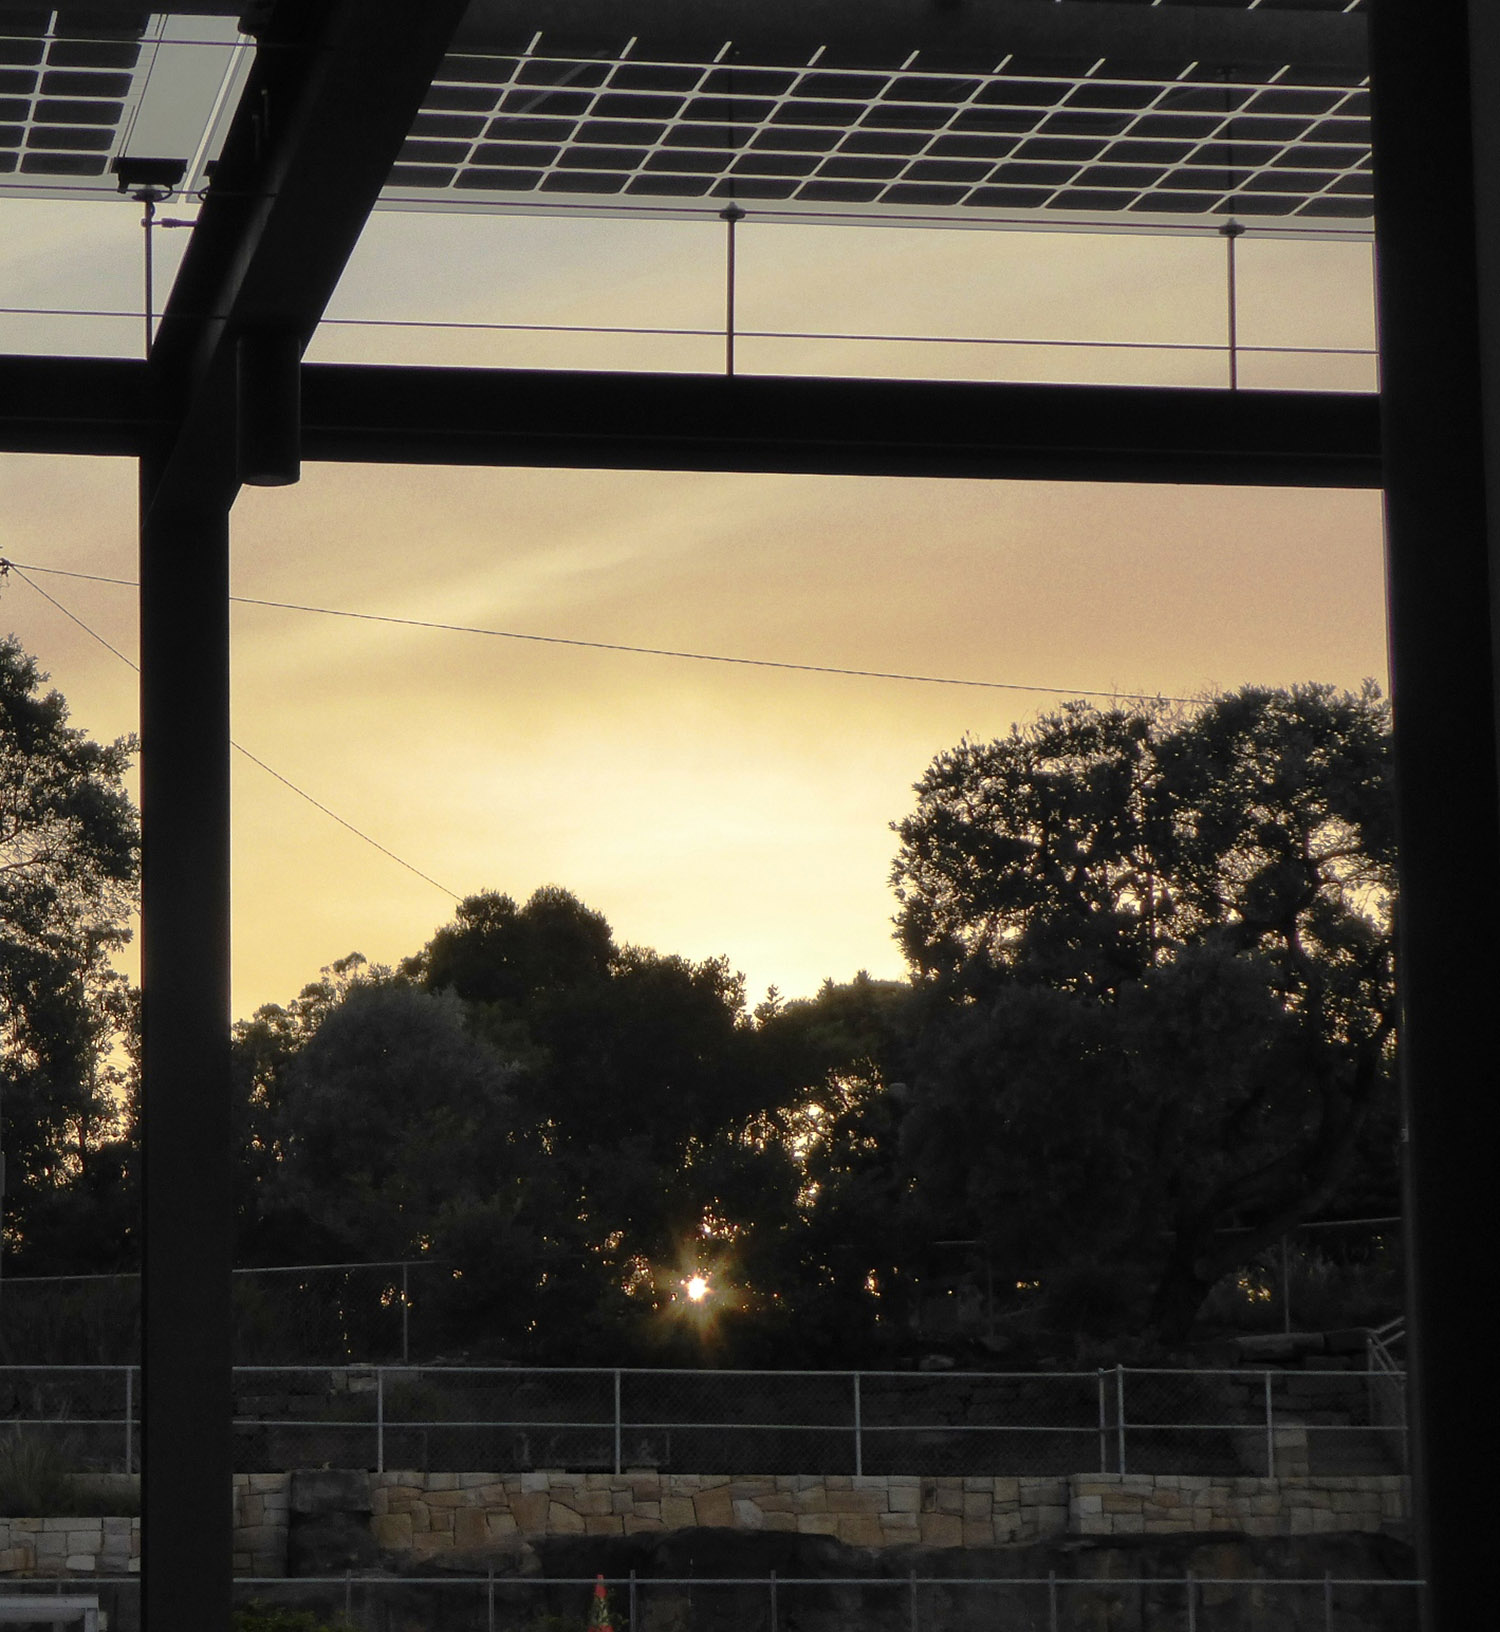 Sunrise through pergola with solar collectors